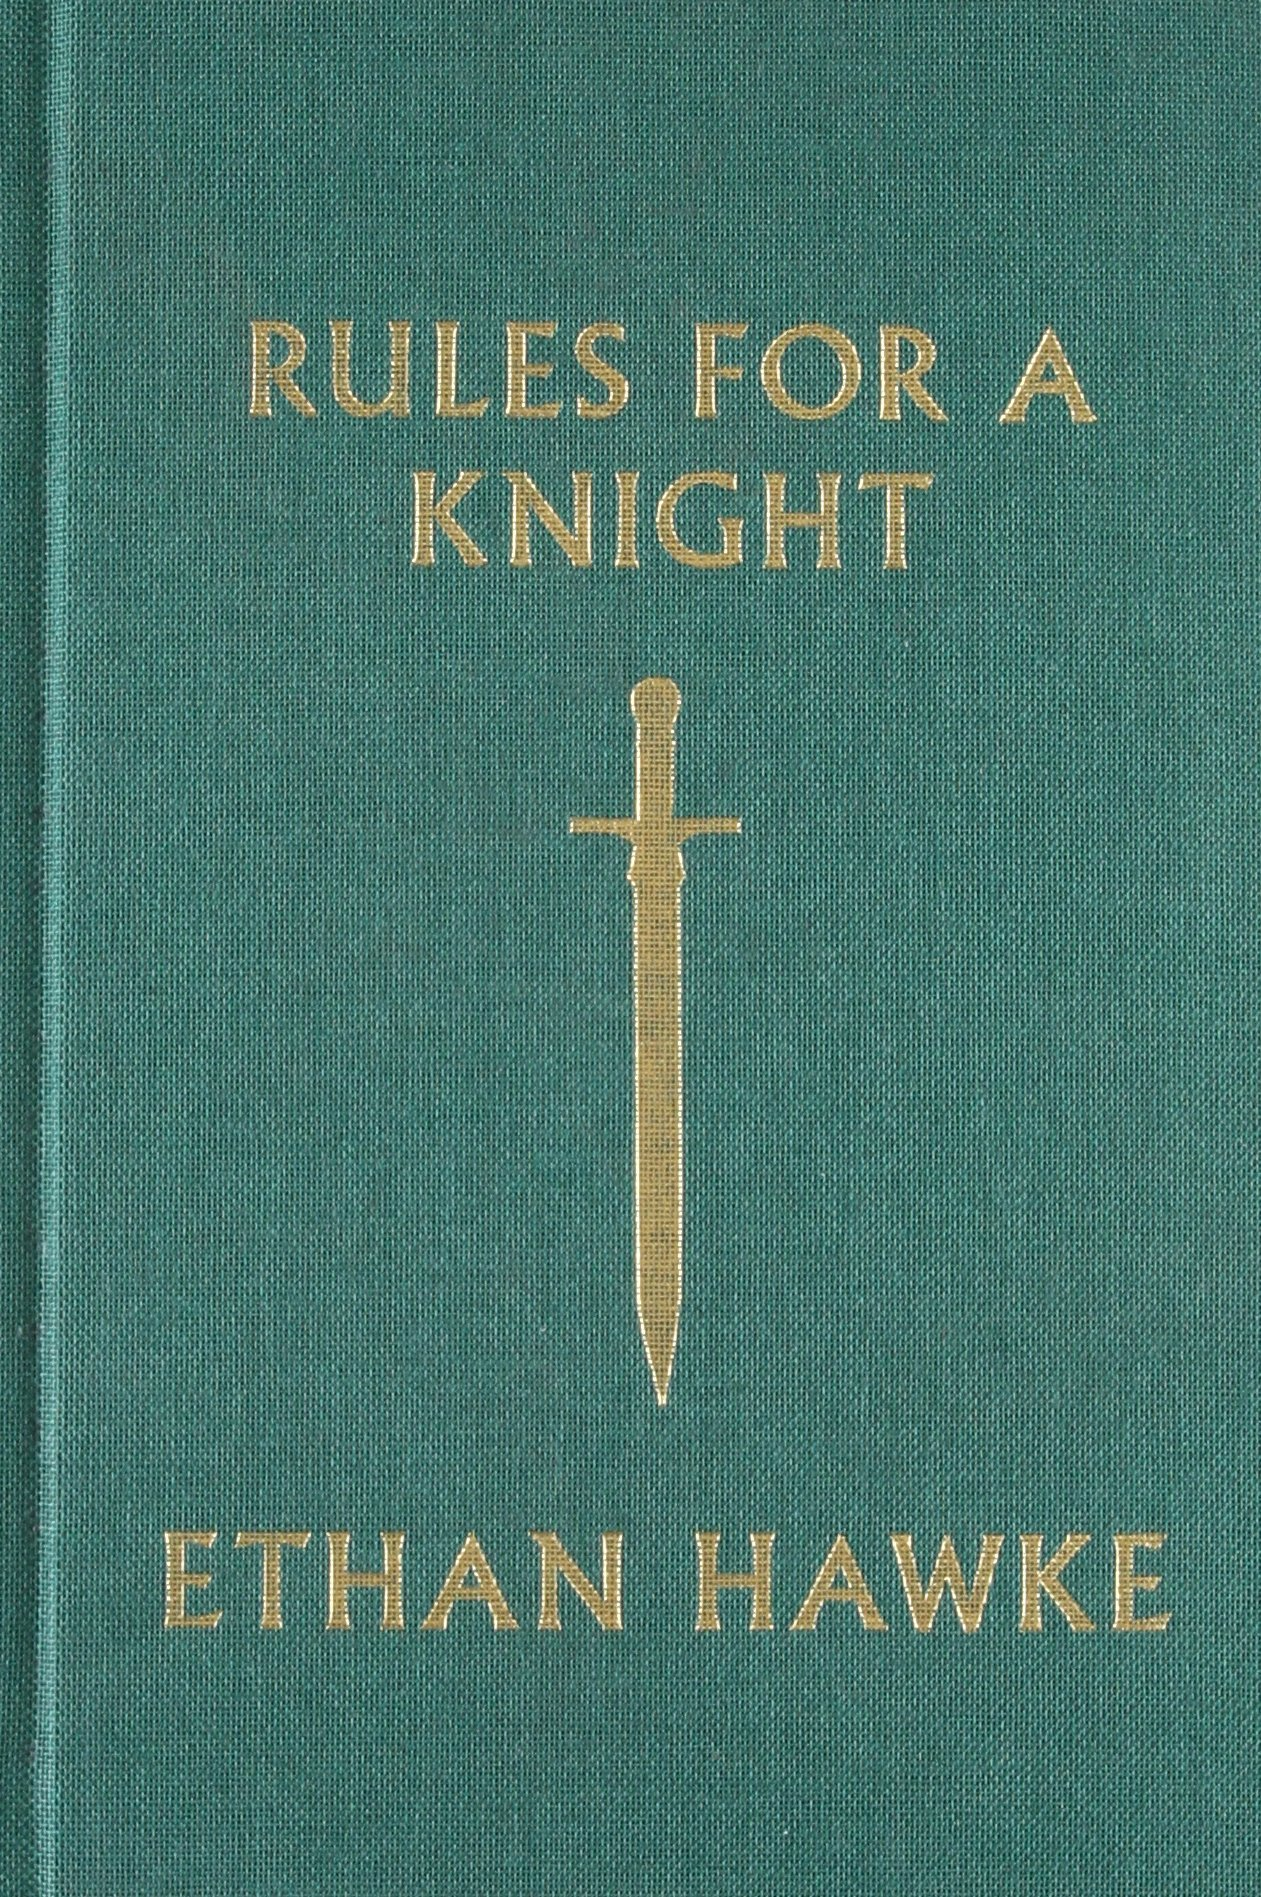 rules-for-a-knight